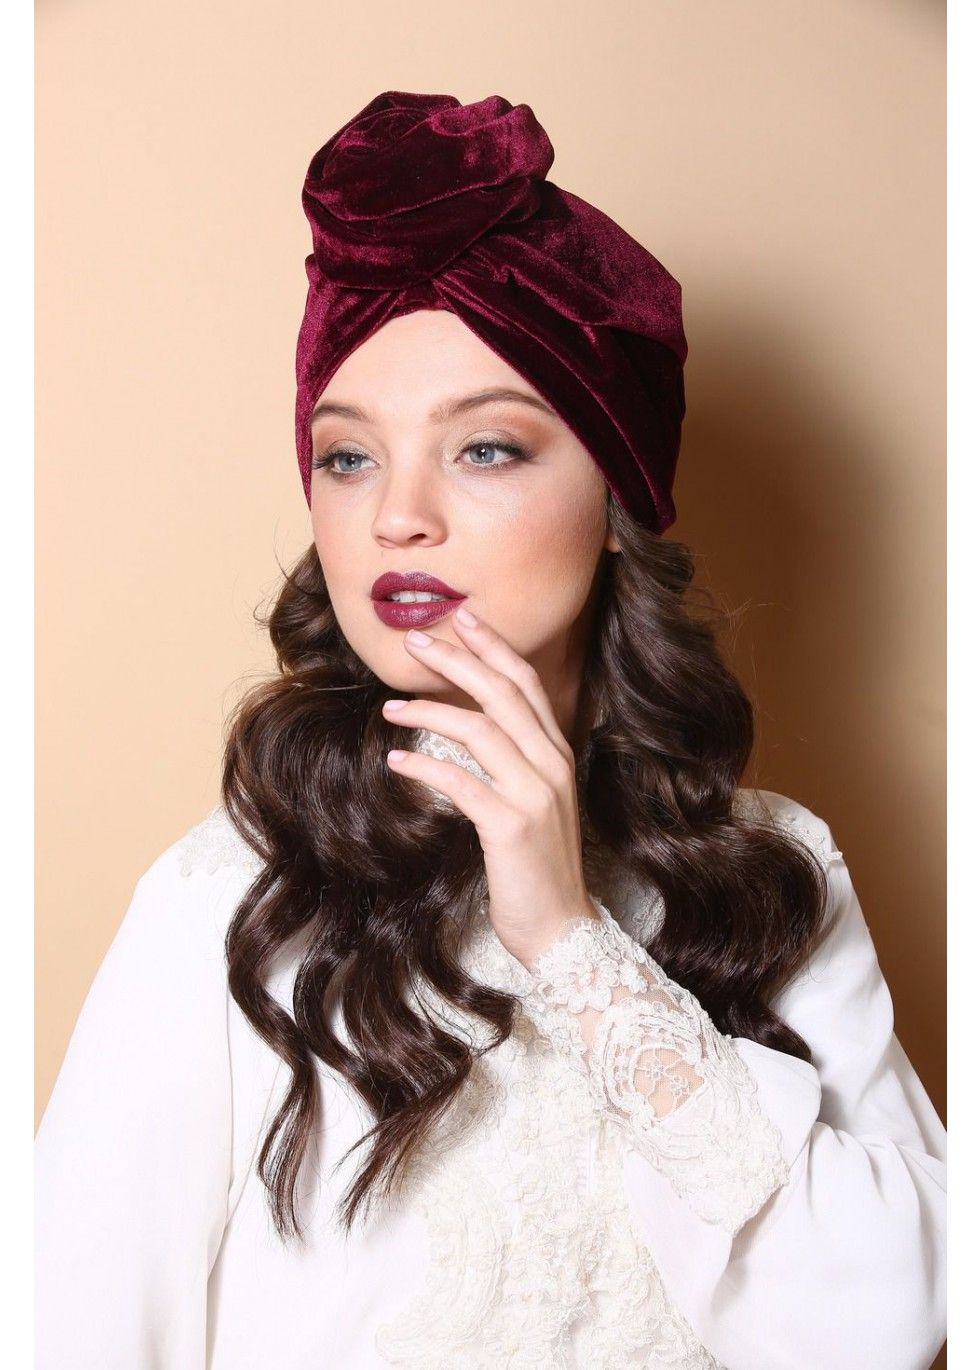 Flower style turban in wine colored velvet. The Turban is stretchy and  light. Turban hats 29de89578b0c